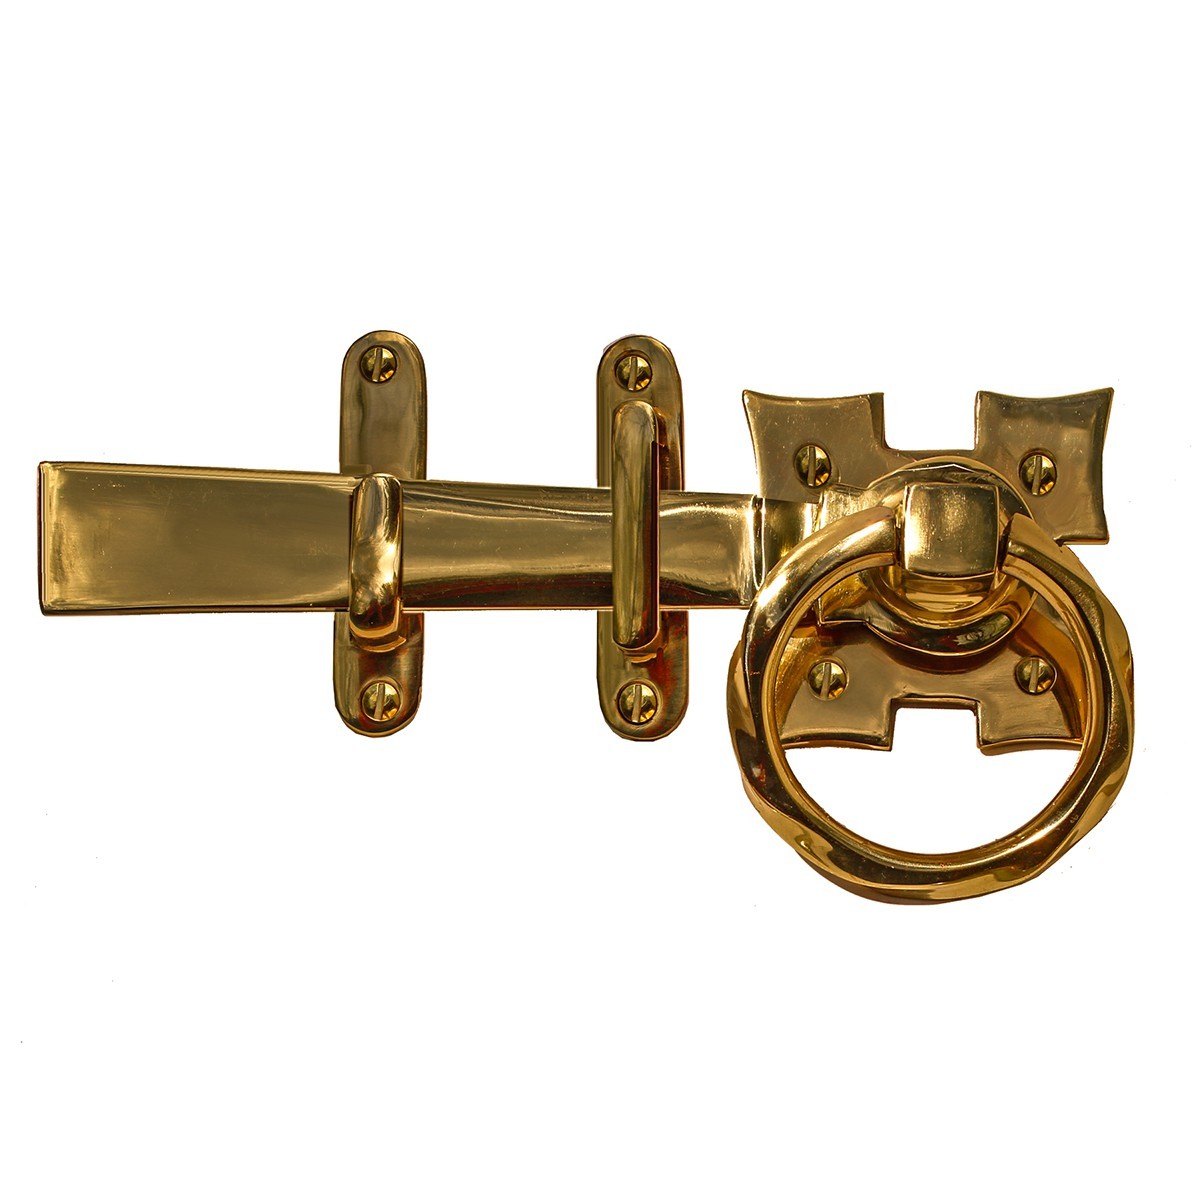 Gate Latch Set Solid Brass Ring Twist 7 L Heavy Duty Solid Brass Backyard Gate Latch Heavy Duty Decorative Gate Latch Outside Garden Gate Latches